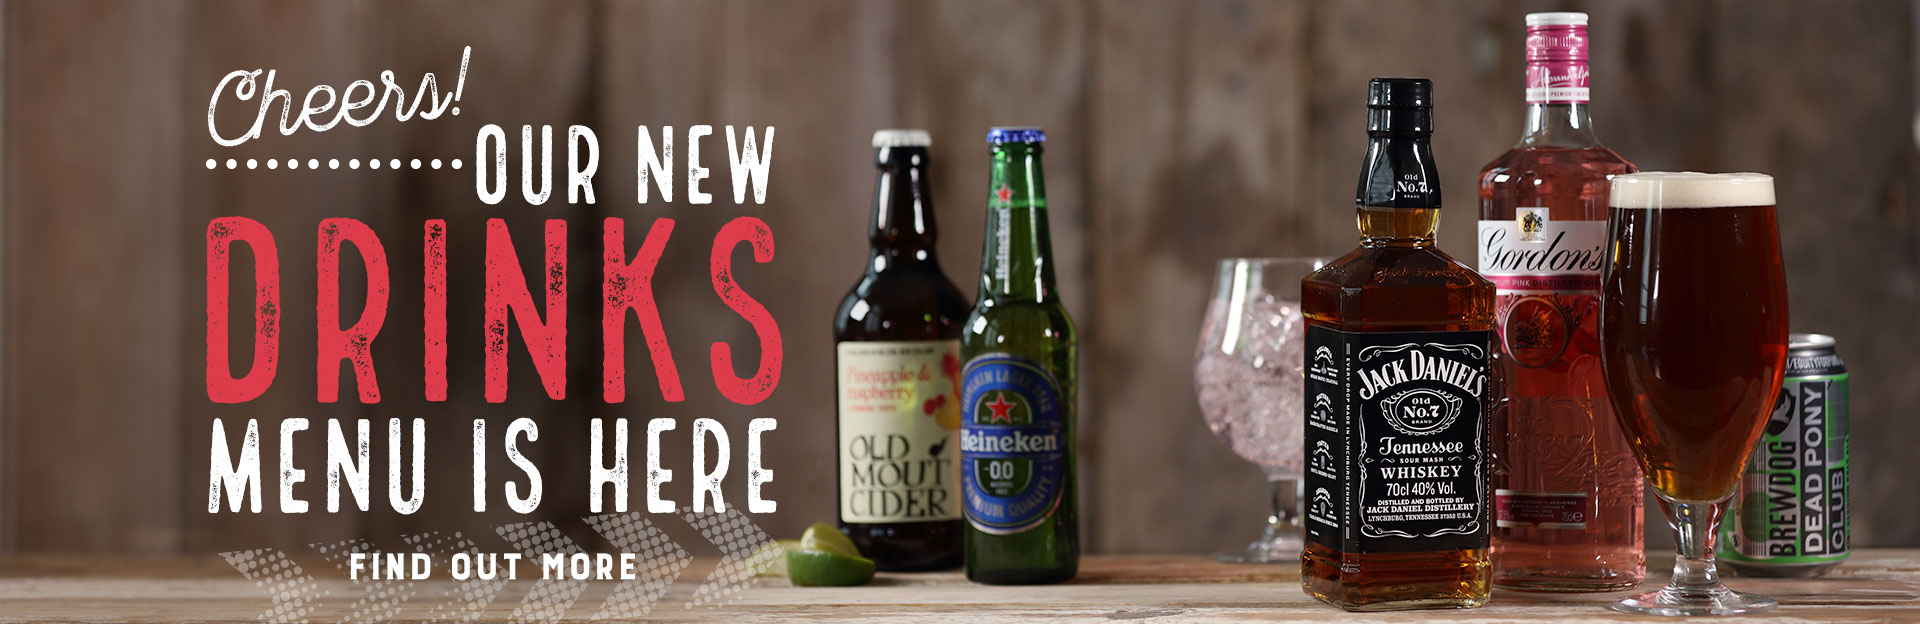 New Drinks Menu Coming Soon at The Gardeners Arms